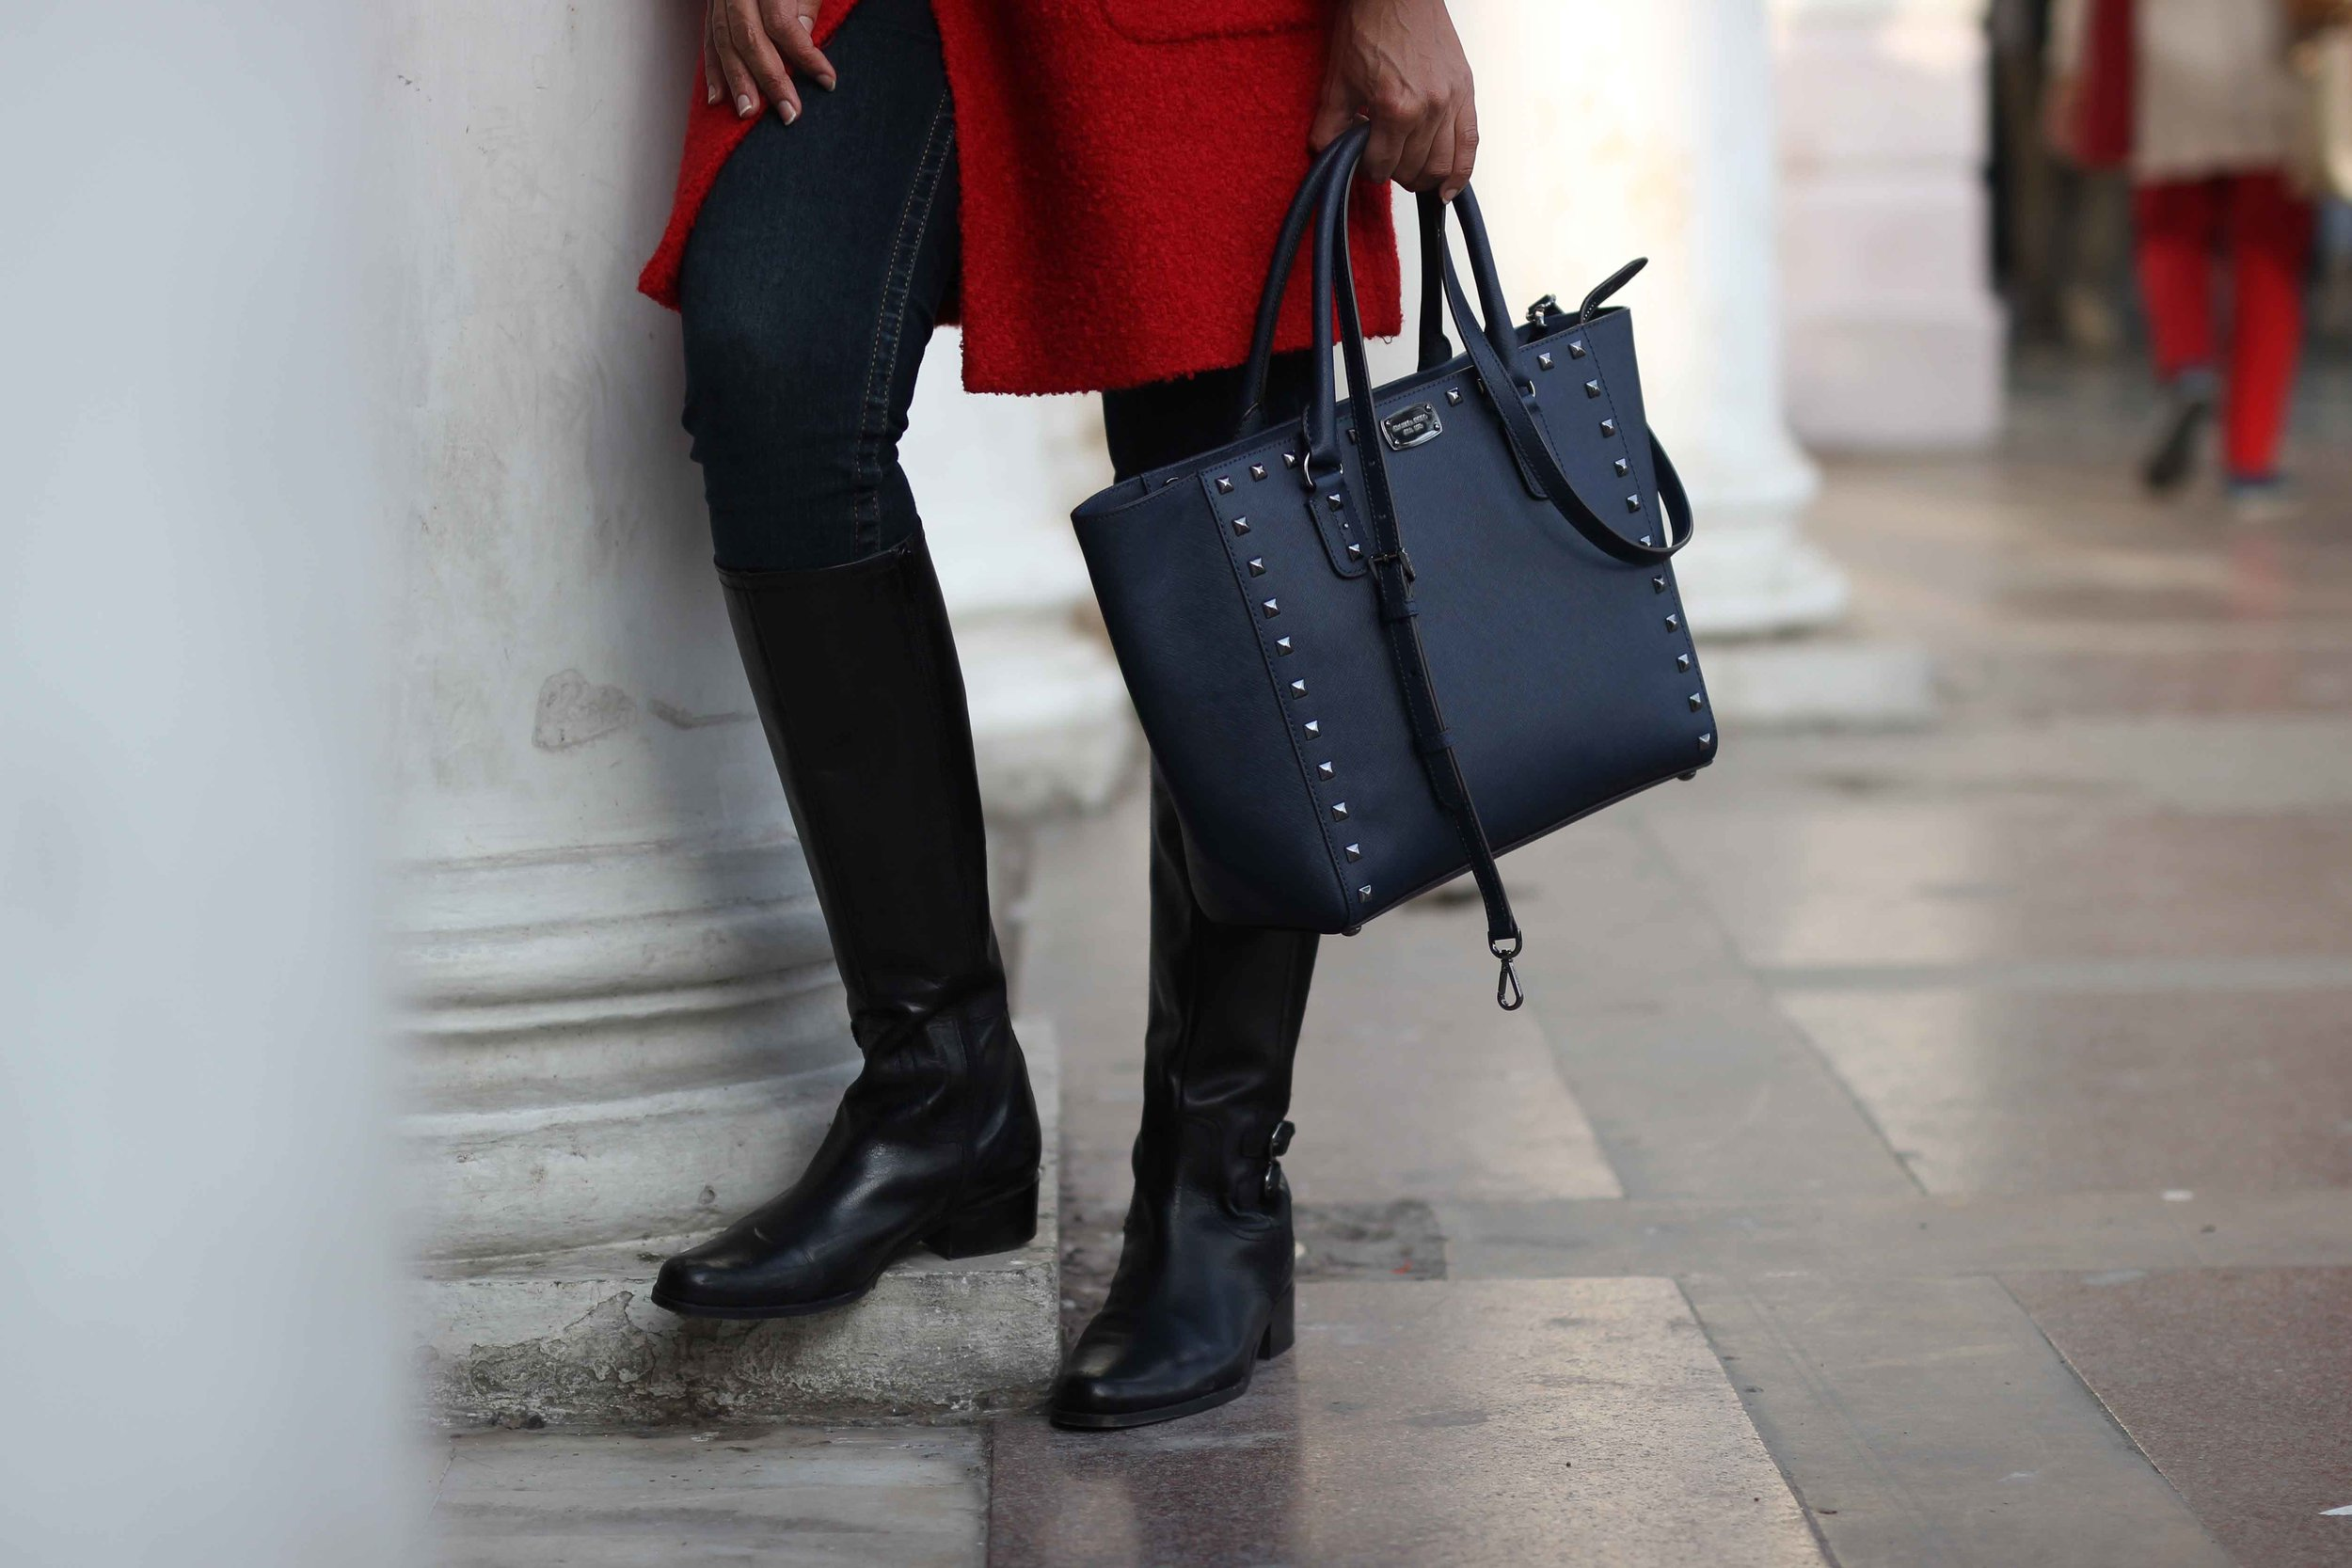 Navy Michael Kors bag, black boots, Christmas outfit ideas.Photo: Infinito Photography. Image©sourcingstyle.com